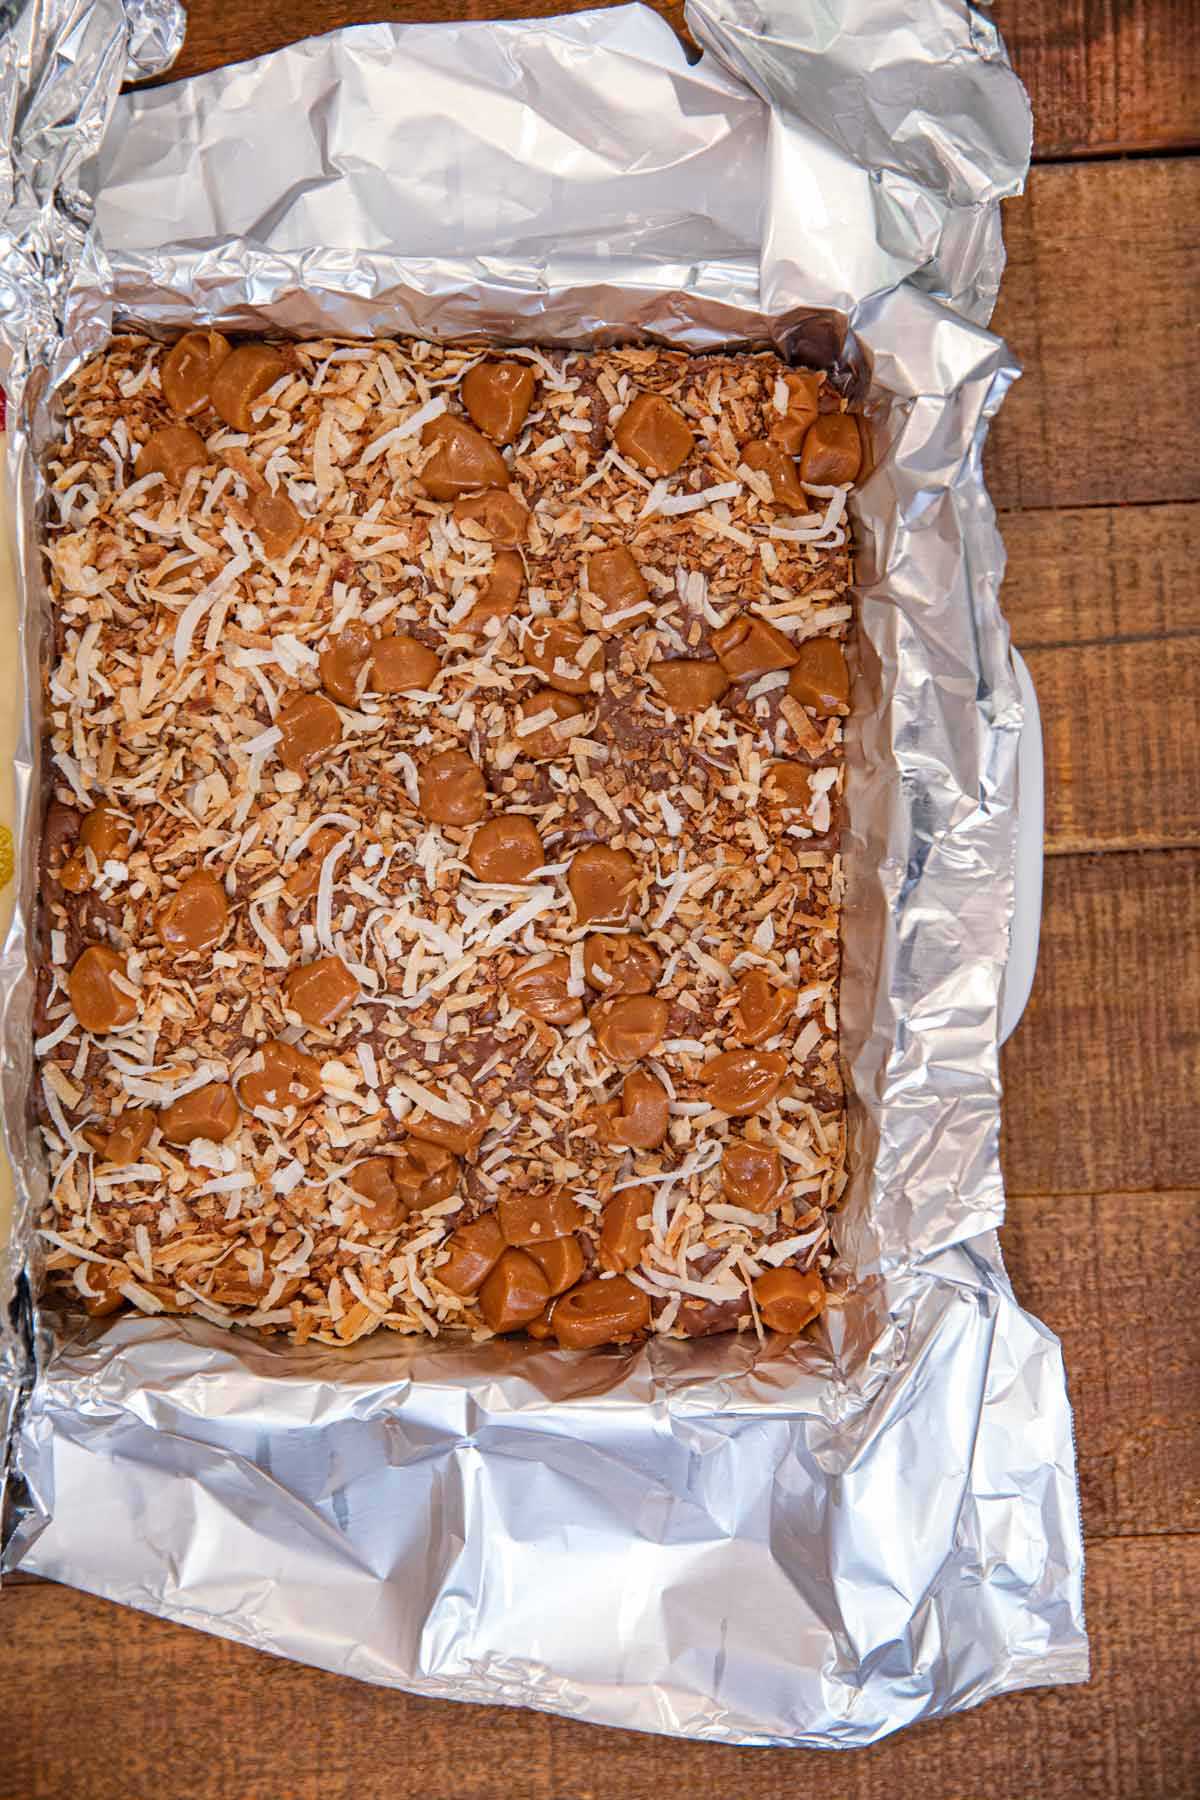 baking dish of Samoa's Cookie Fudge lined with foil